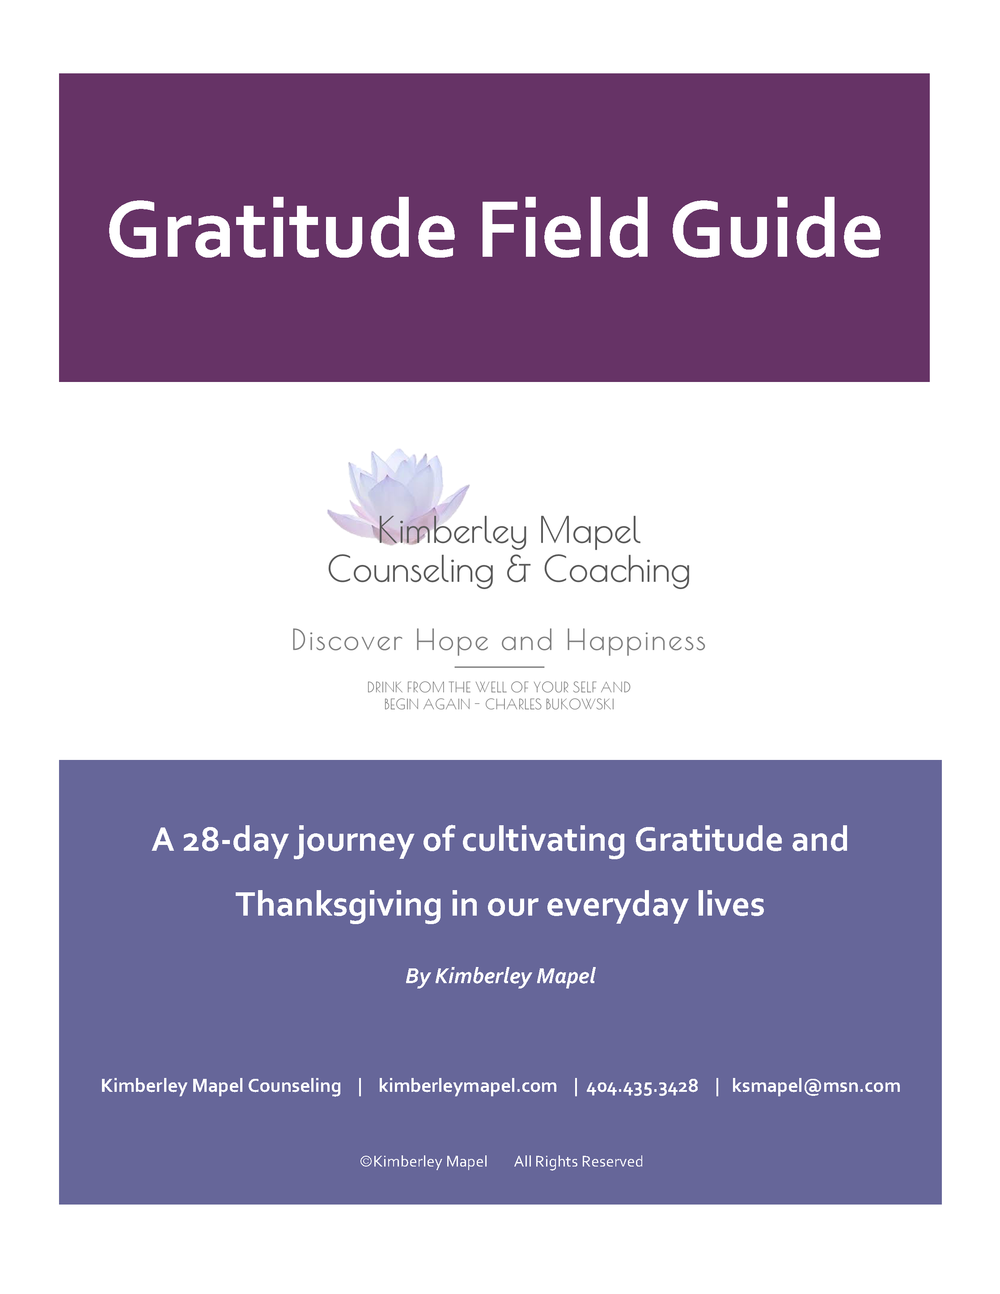 Gratitude Field Guide 4-1-2017 COVER PAGE_Page_01.png